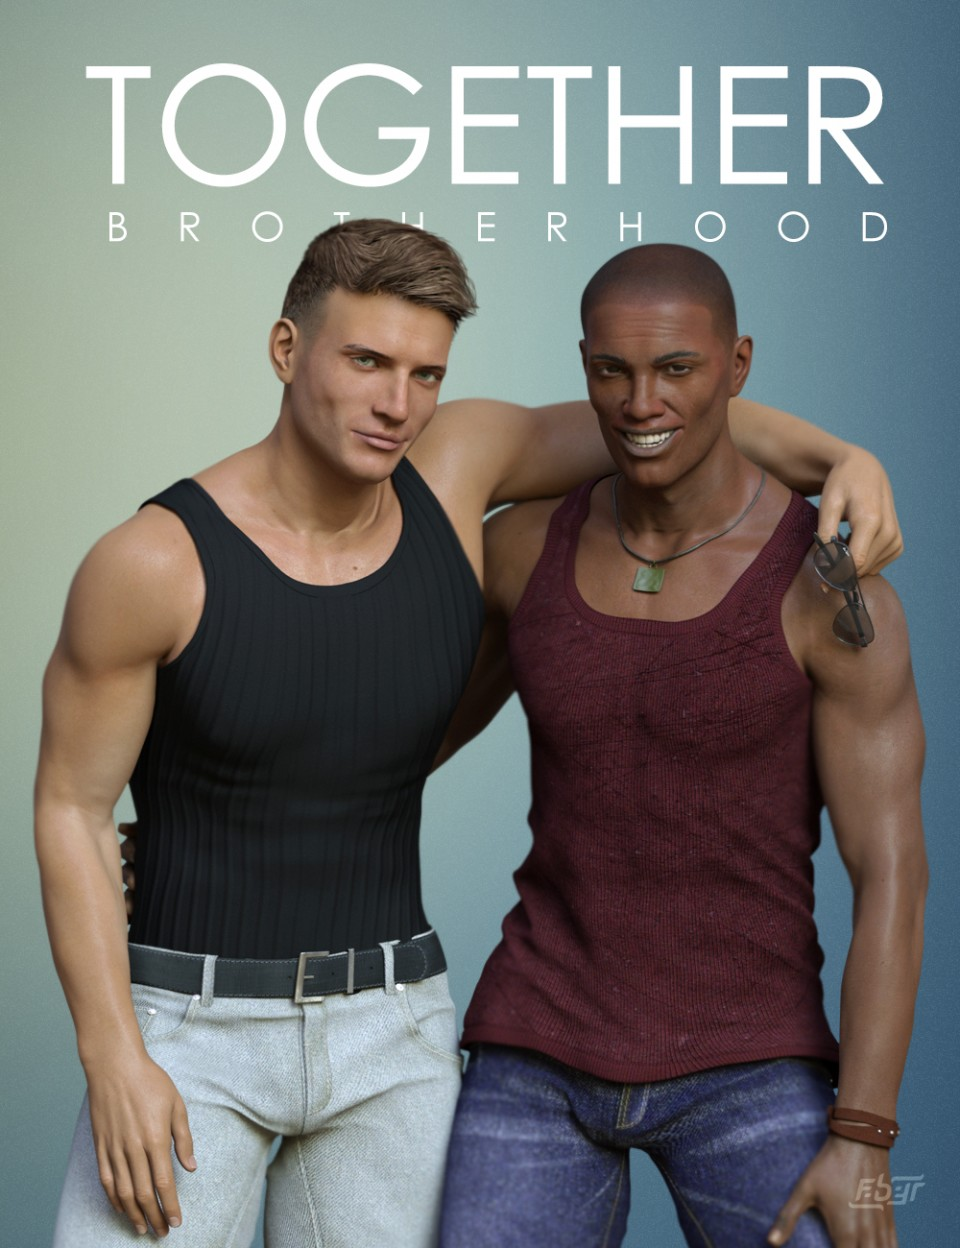 Together: Brotherhood Poses for Genesis 8 Male(s)_DAZ3D下载站